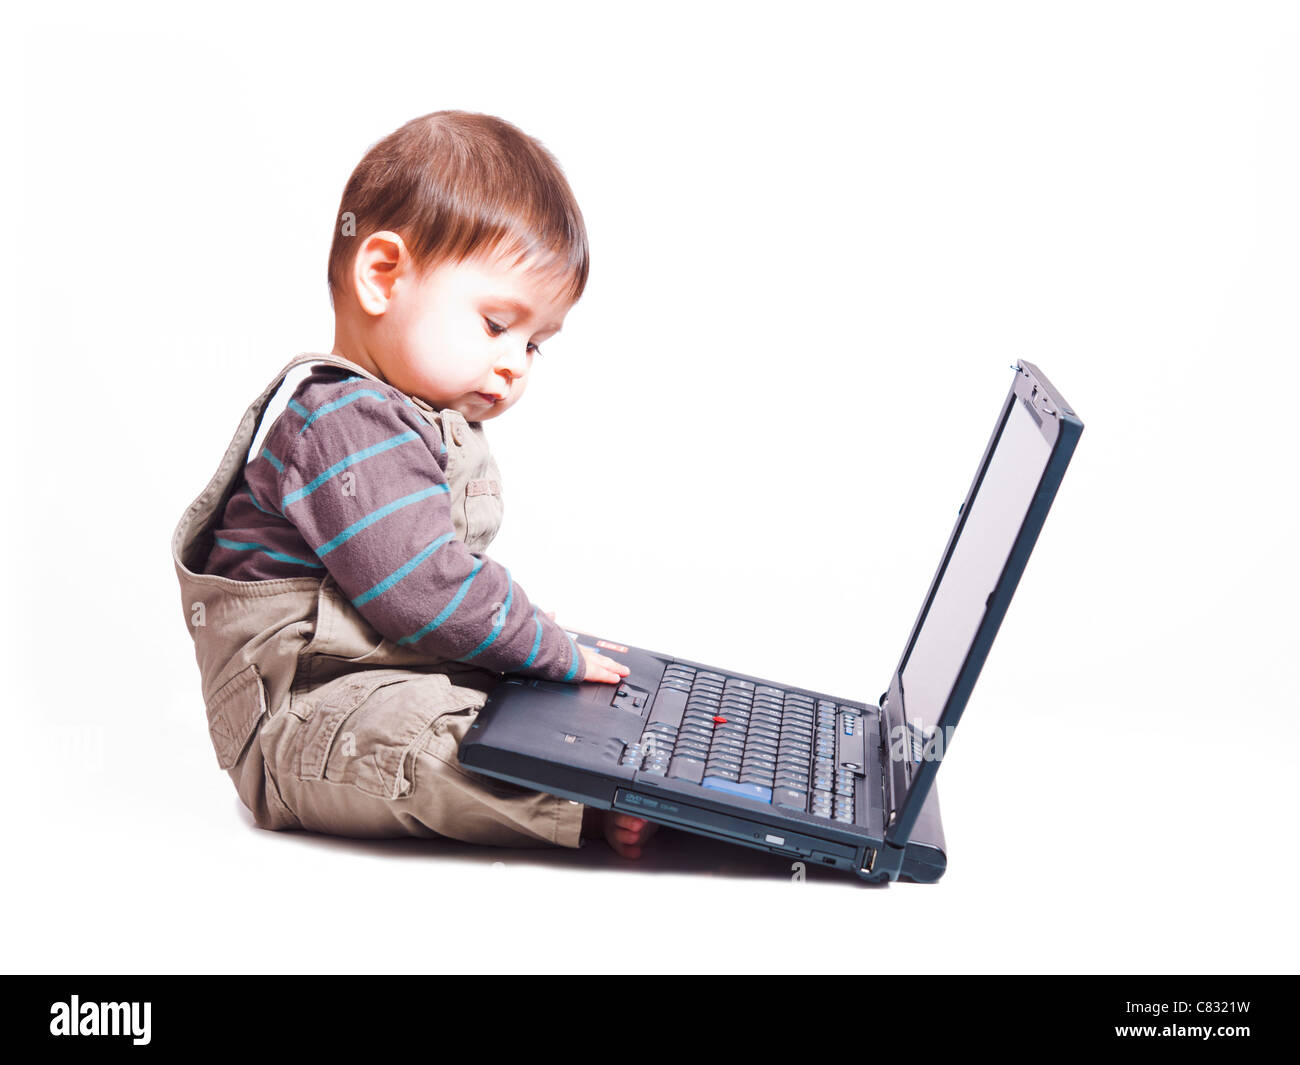 6 month baby boy sitting in front of laptop - Stock Image